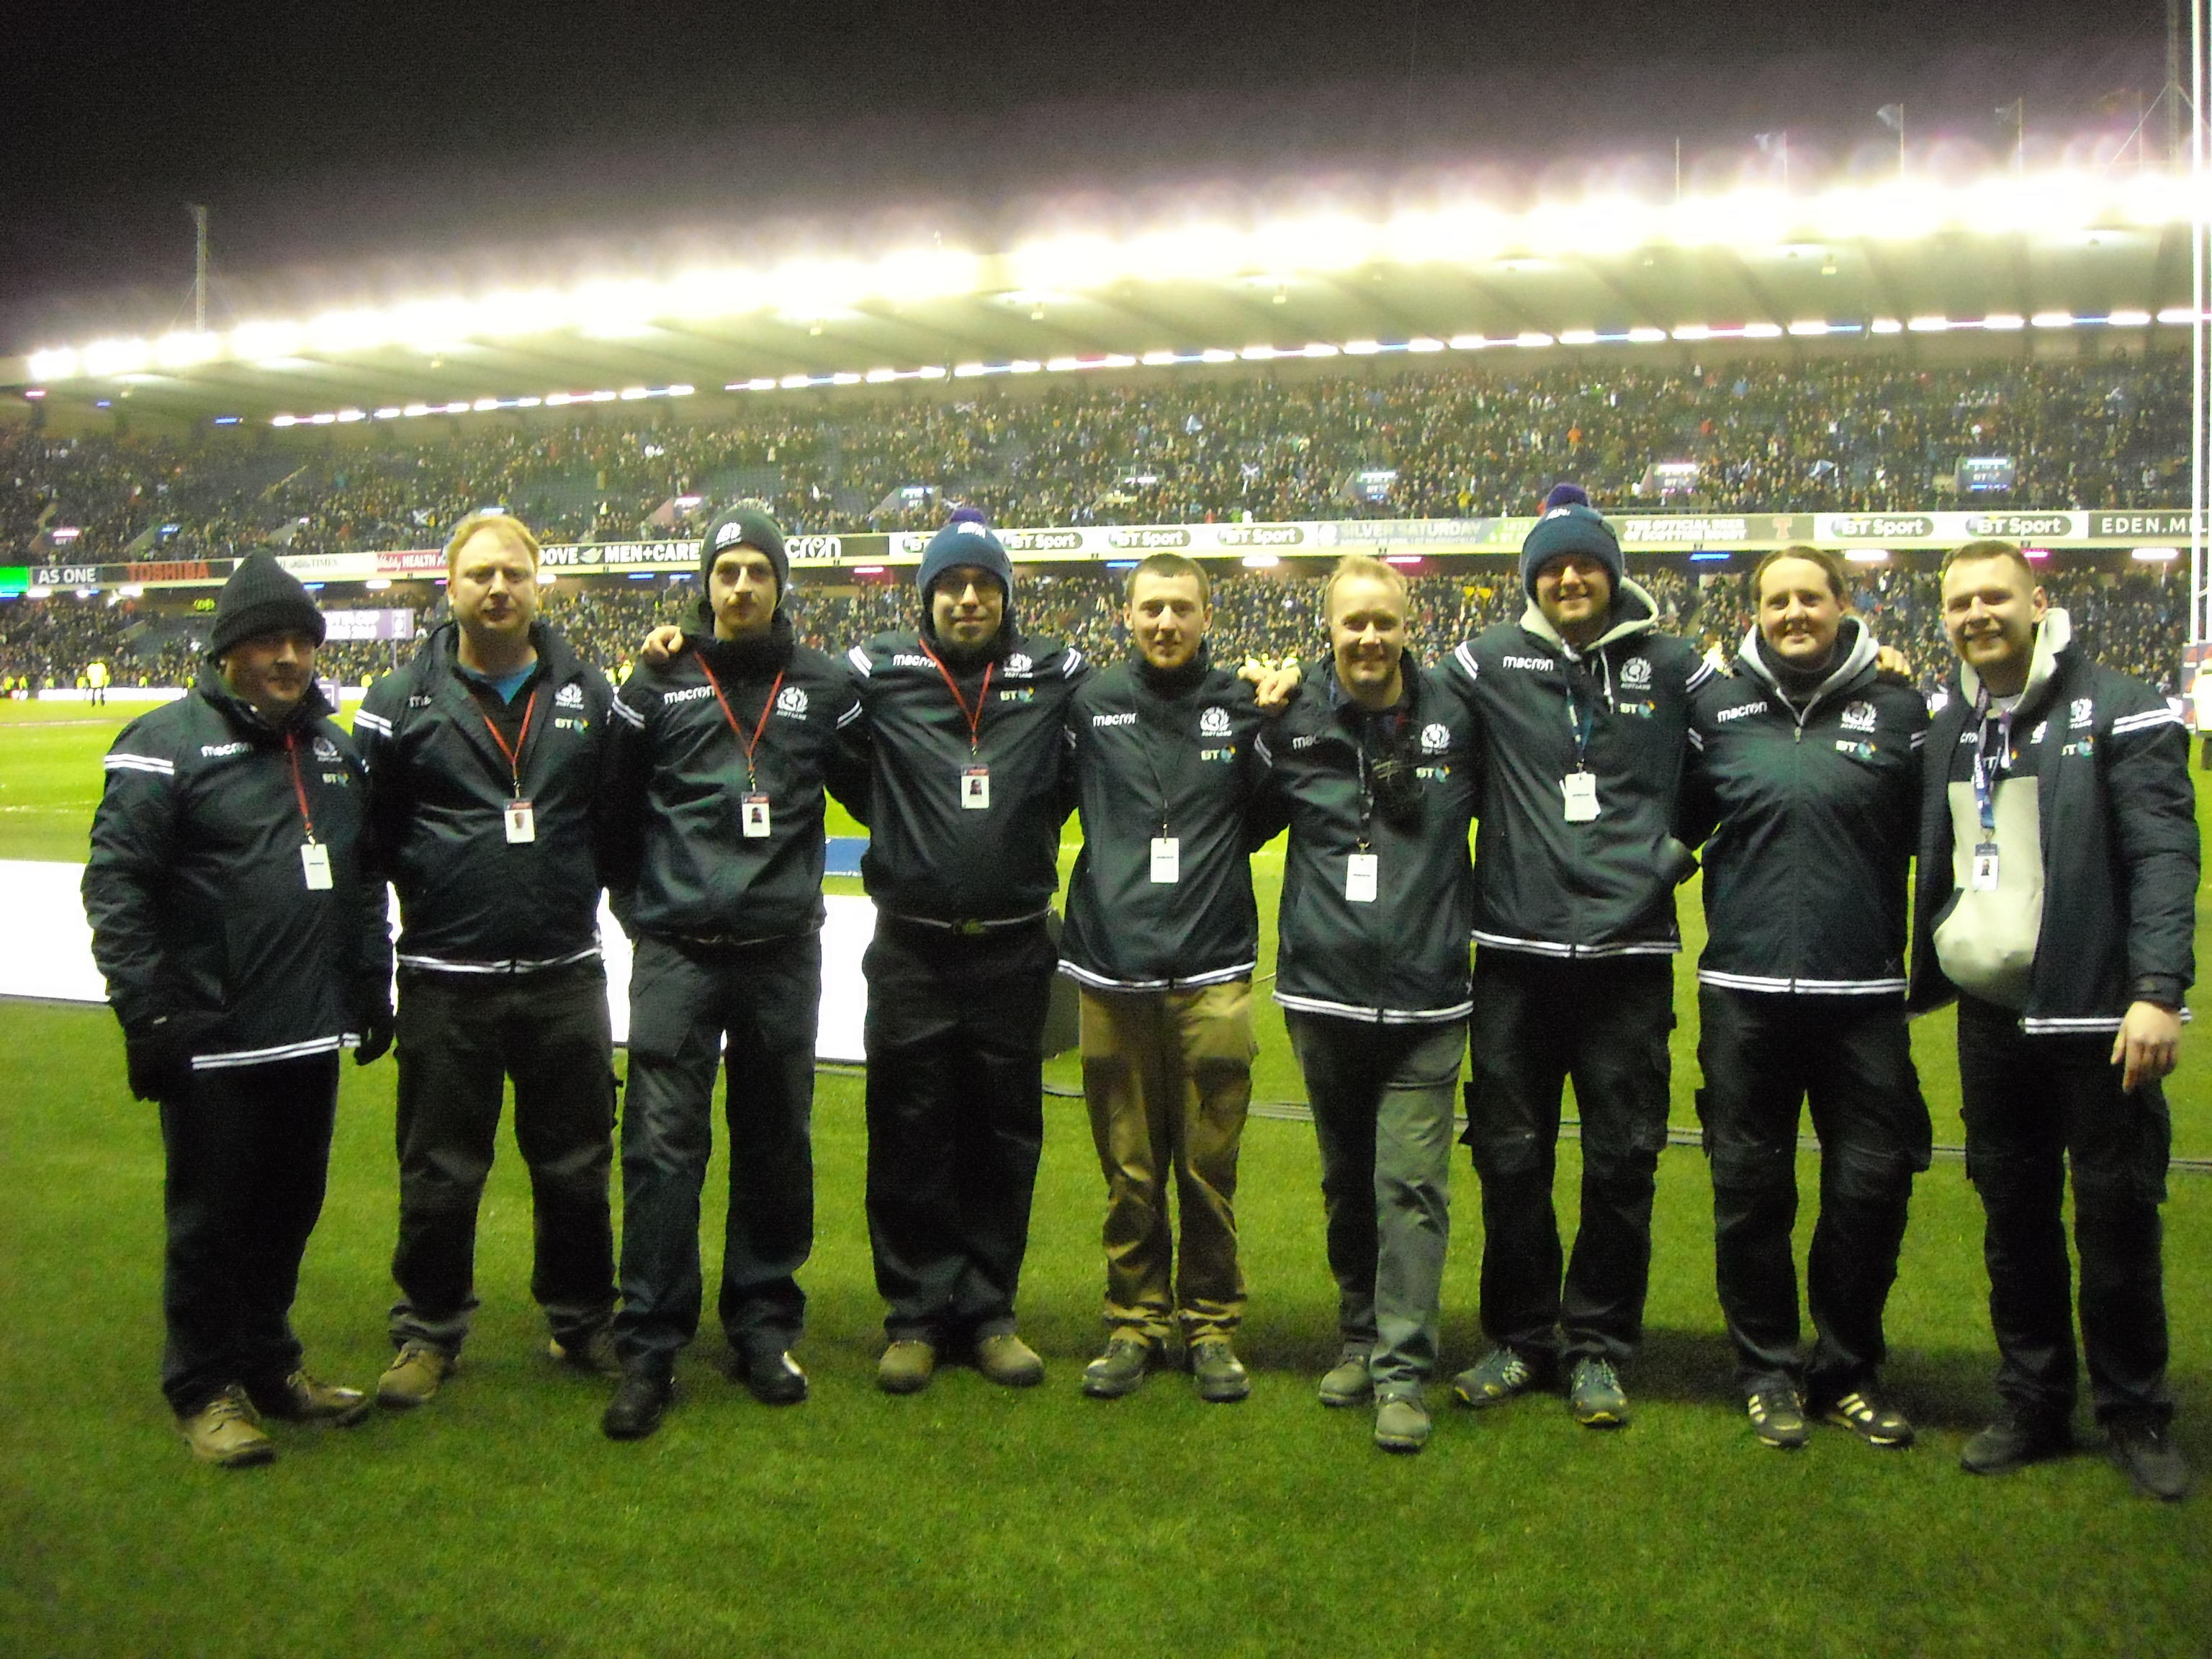 SALTEX College Cup winners enjoy Six Nations experience